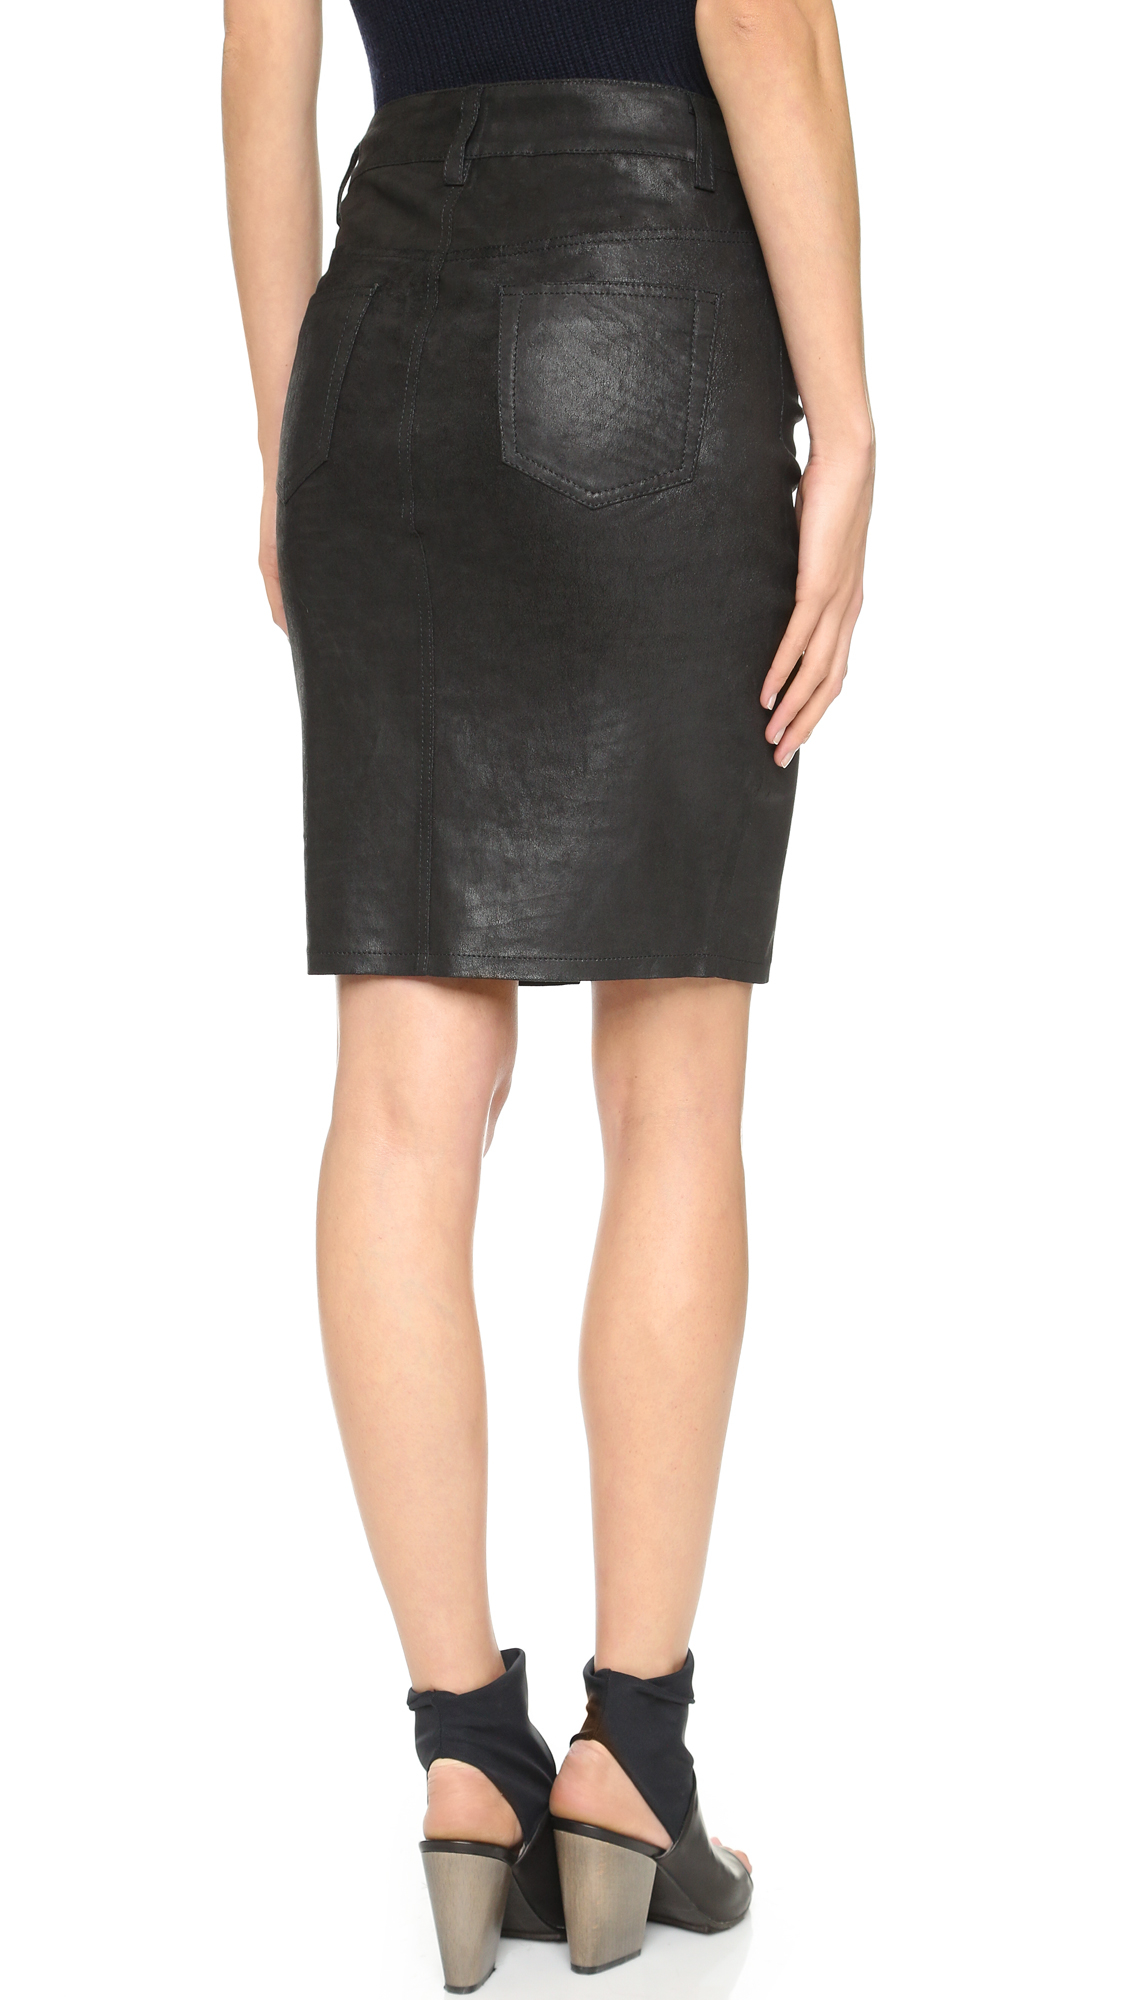 You searched for: leather slit skirt! Etsy is the home to thousands of handmade, vintage, and one-of-a-kind products and gifts related to your search. No matter what you're looking for or where you are in the world, our global marketplace of sellers can help you find unique and affordable options. Let's get started!